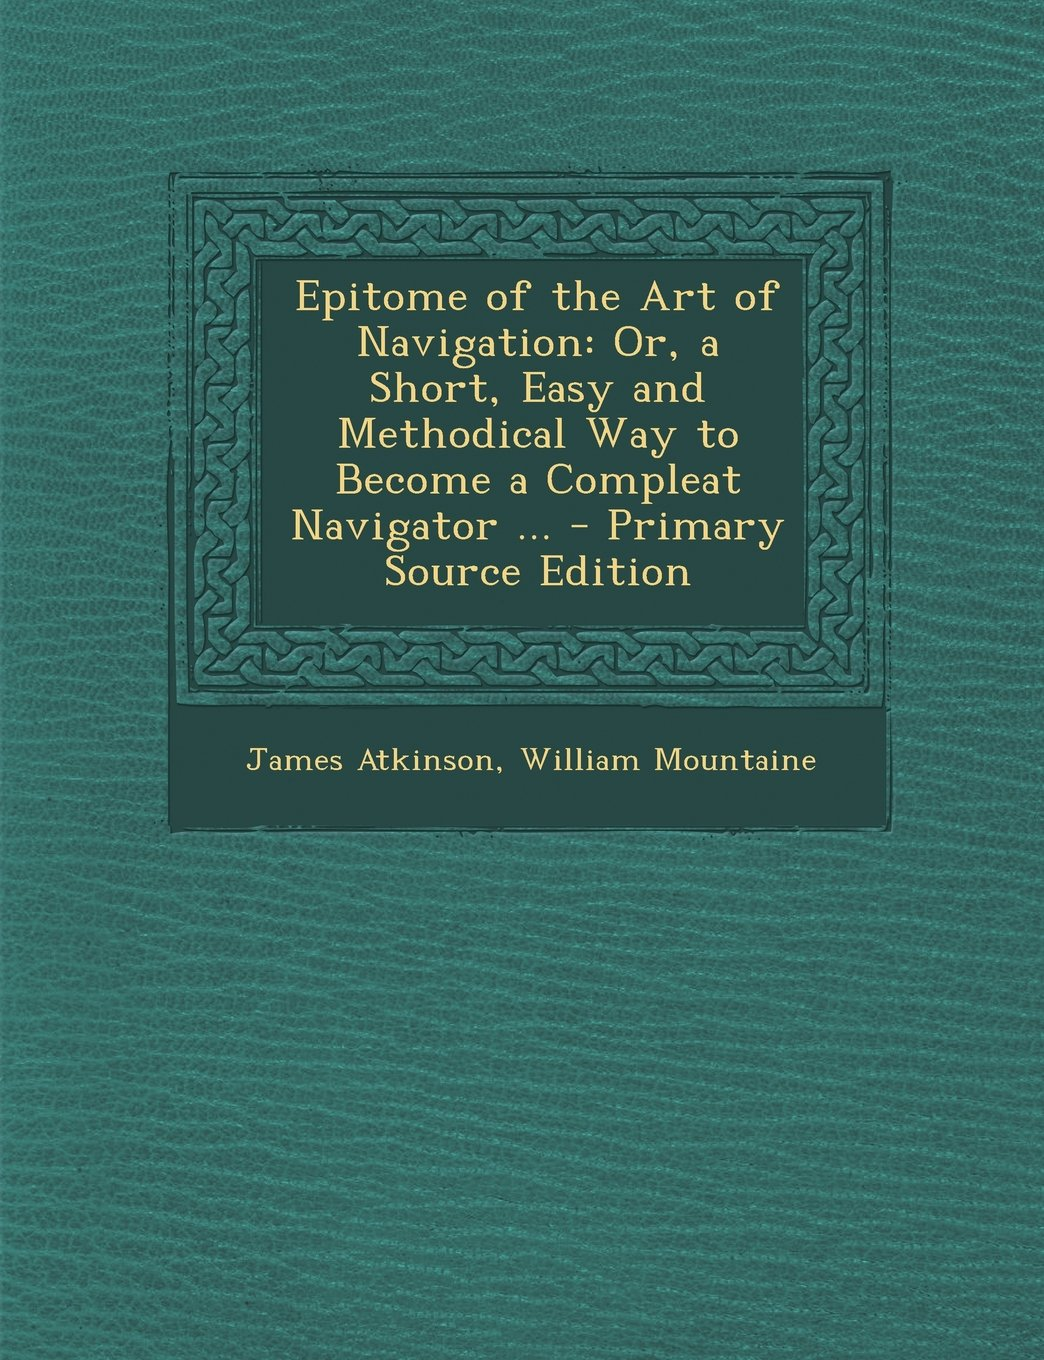 Epitome of the Art of Navigation: Or, a Short, Easy and Methodical Way to Become a Compleat Navigator ... - Primary Source Edition pdf epub